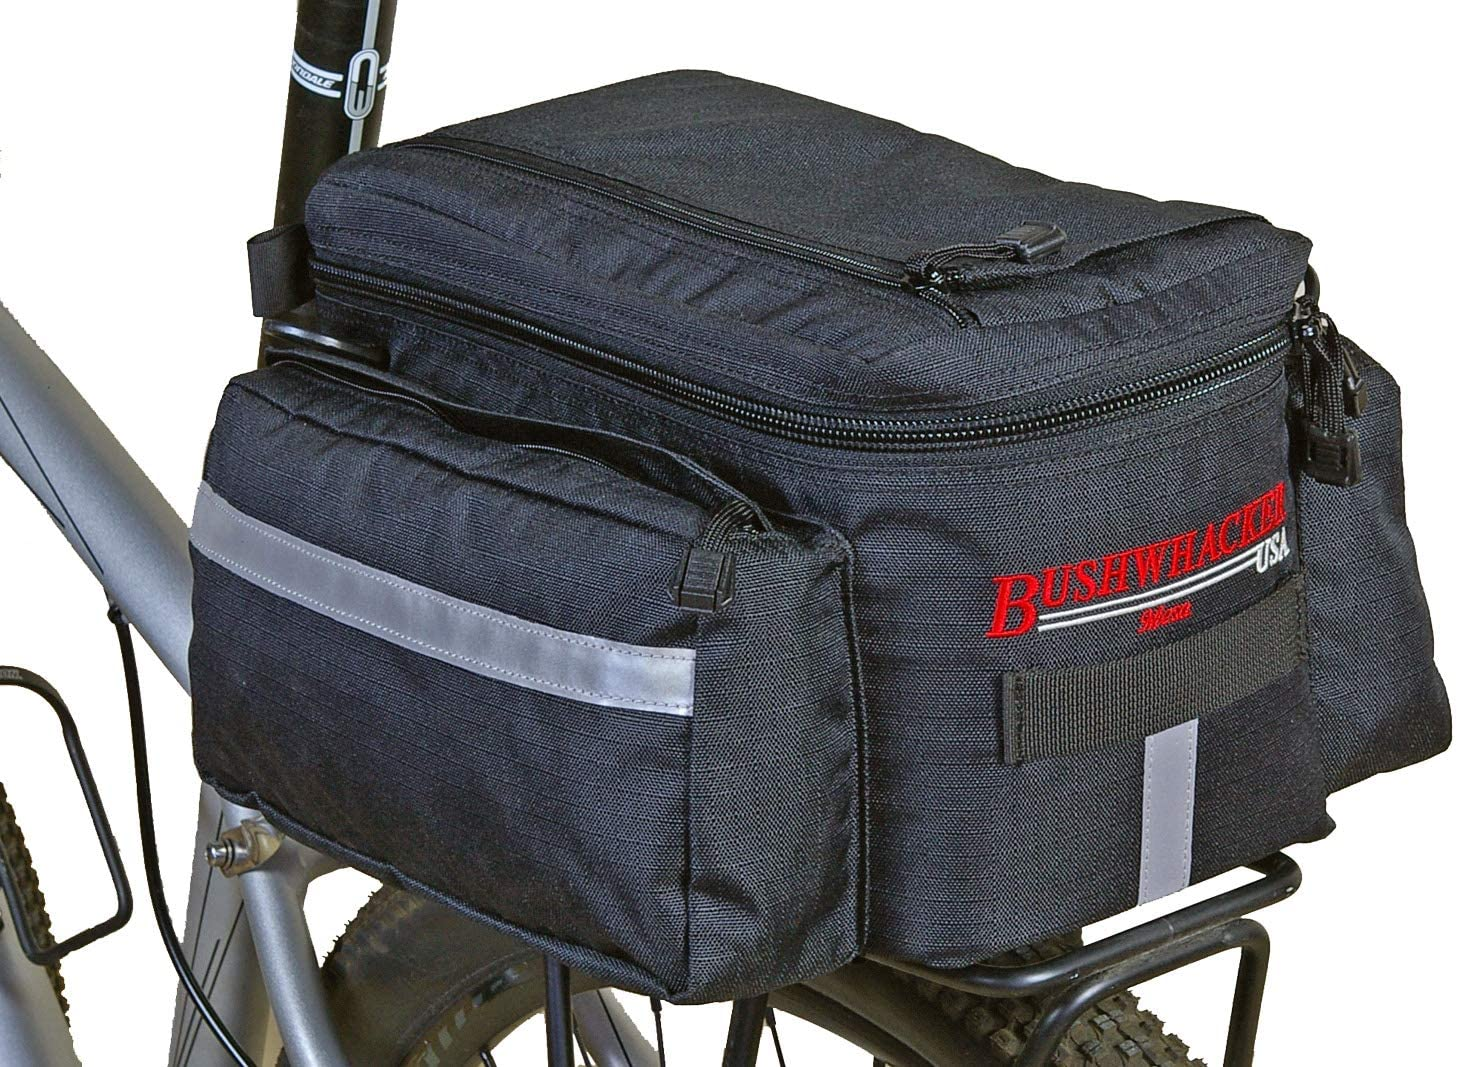 Bushwhacker Mesa Trunk Bag Black - w/Rear Light Clip Attachment & Reflective Trim - Bicycle Trunk Bag Cycling Rack Pack Bike Rear Bag Frame Accessories Behind Seat